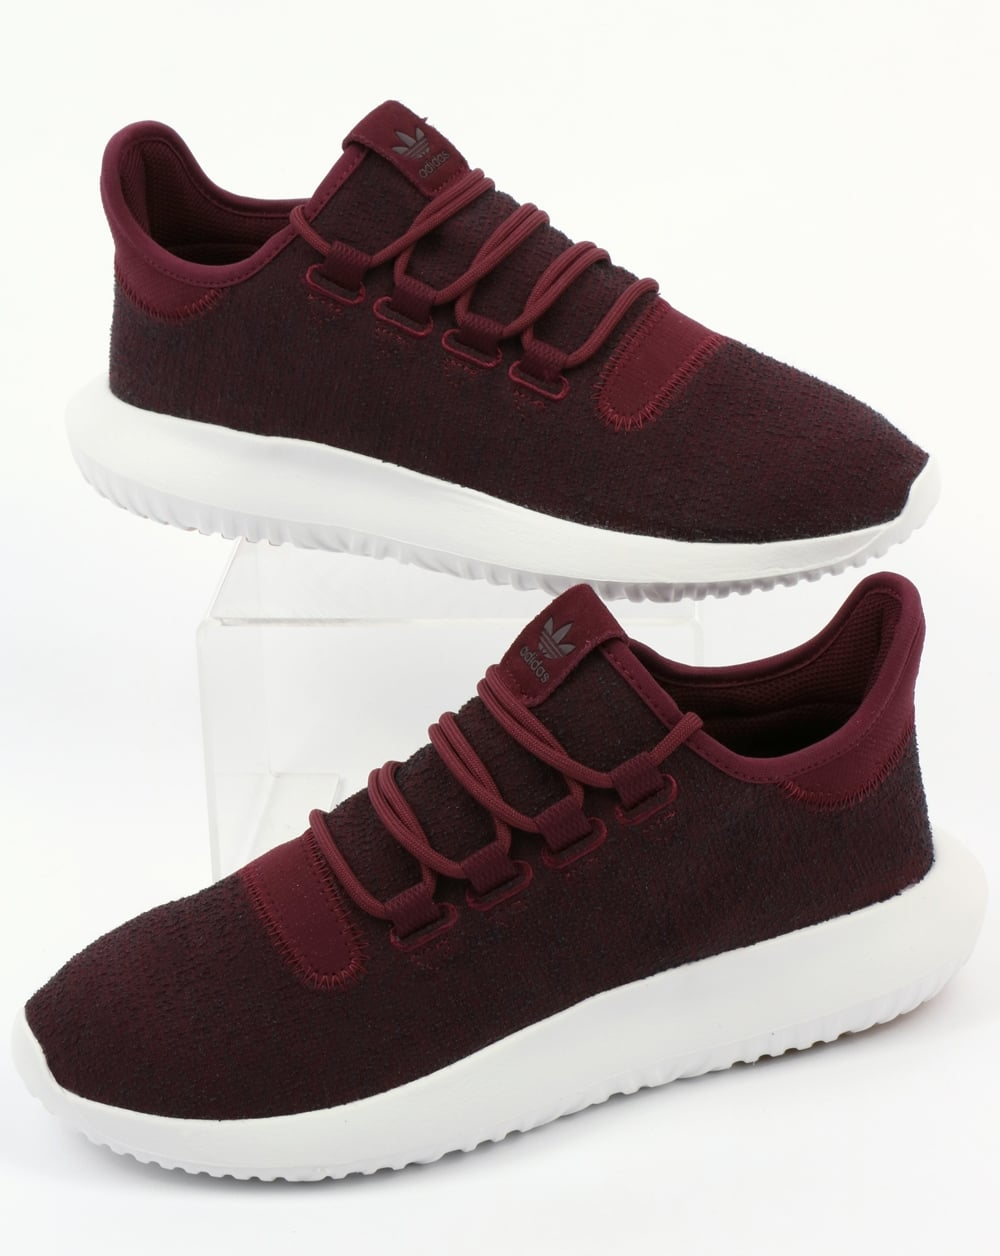 buy popular 1f066 1d4ea Adidas Tubular Shadow Trainers Maroon/Vapour Grey